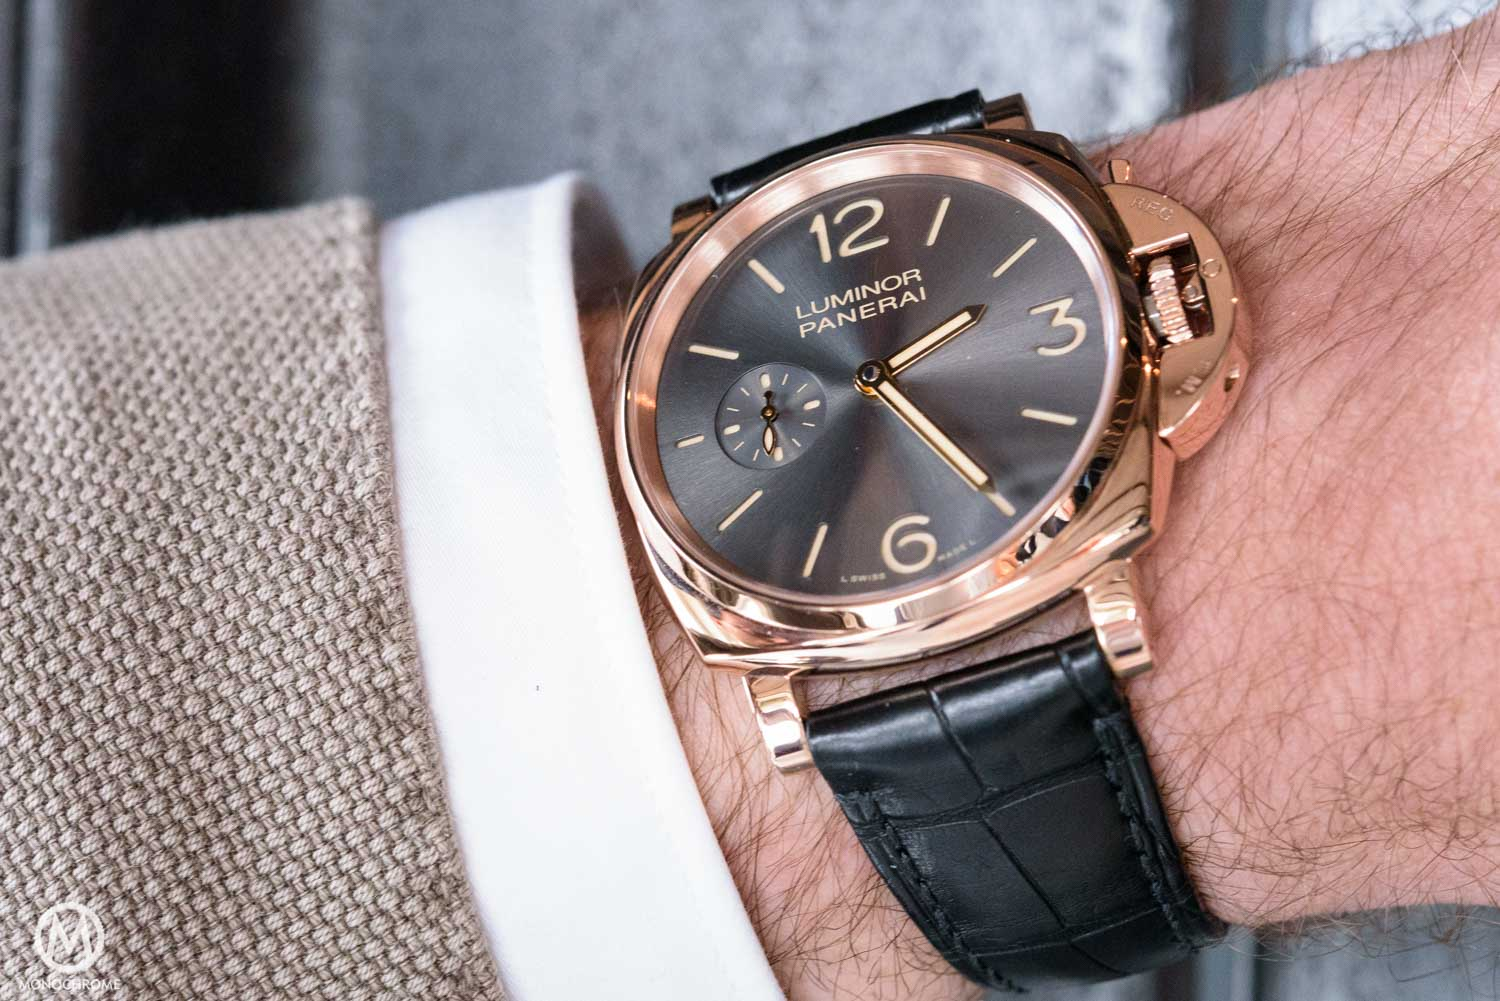 Panerai Luminor Due From Divers Watch To Dress Watch